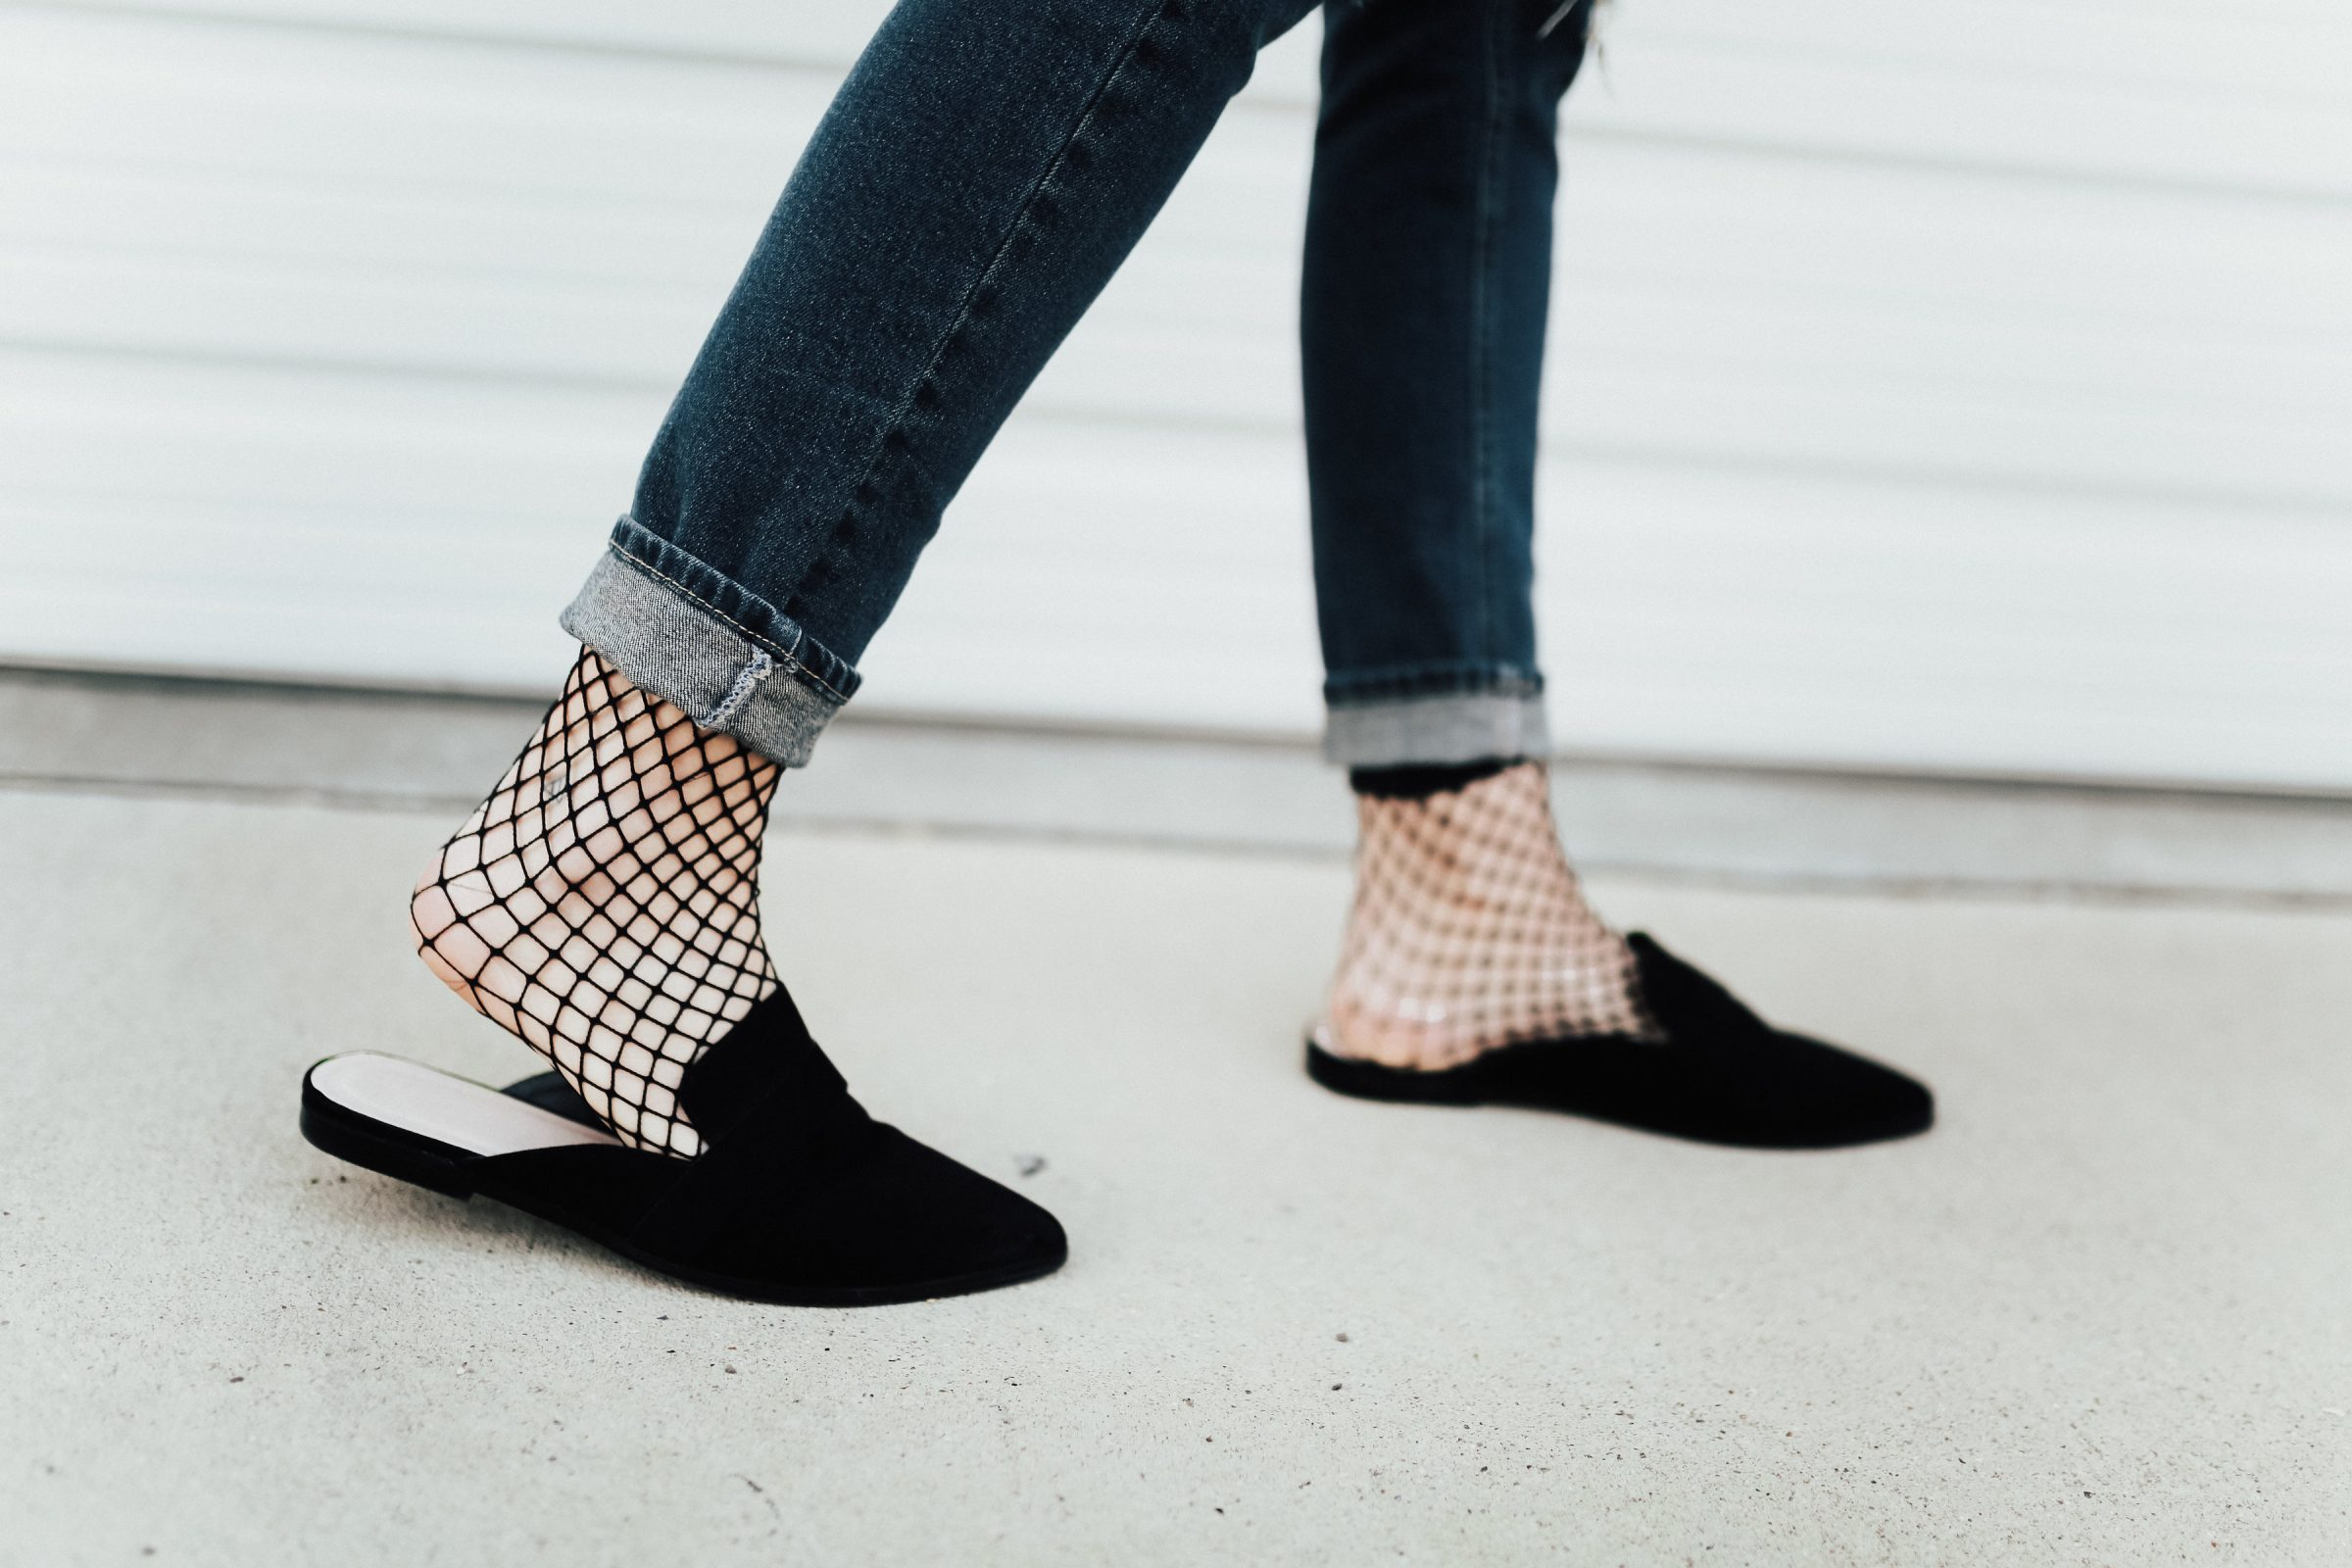 No matter what your preference, our stylish and comfortable women's flats, loafers, mules, and mocs are all designed to offer the arch support you need to stay on your feet through the day. If you demand comfort and the season's hottest trends, our selection of .